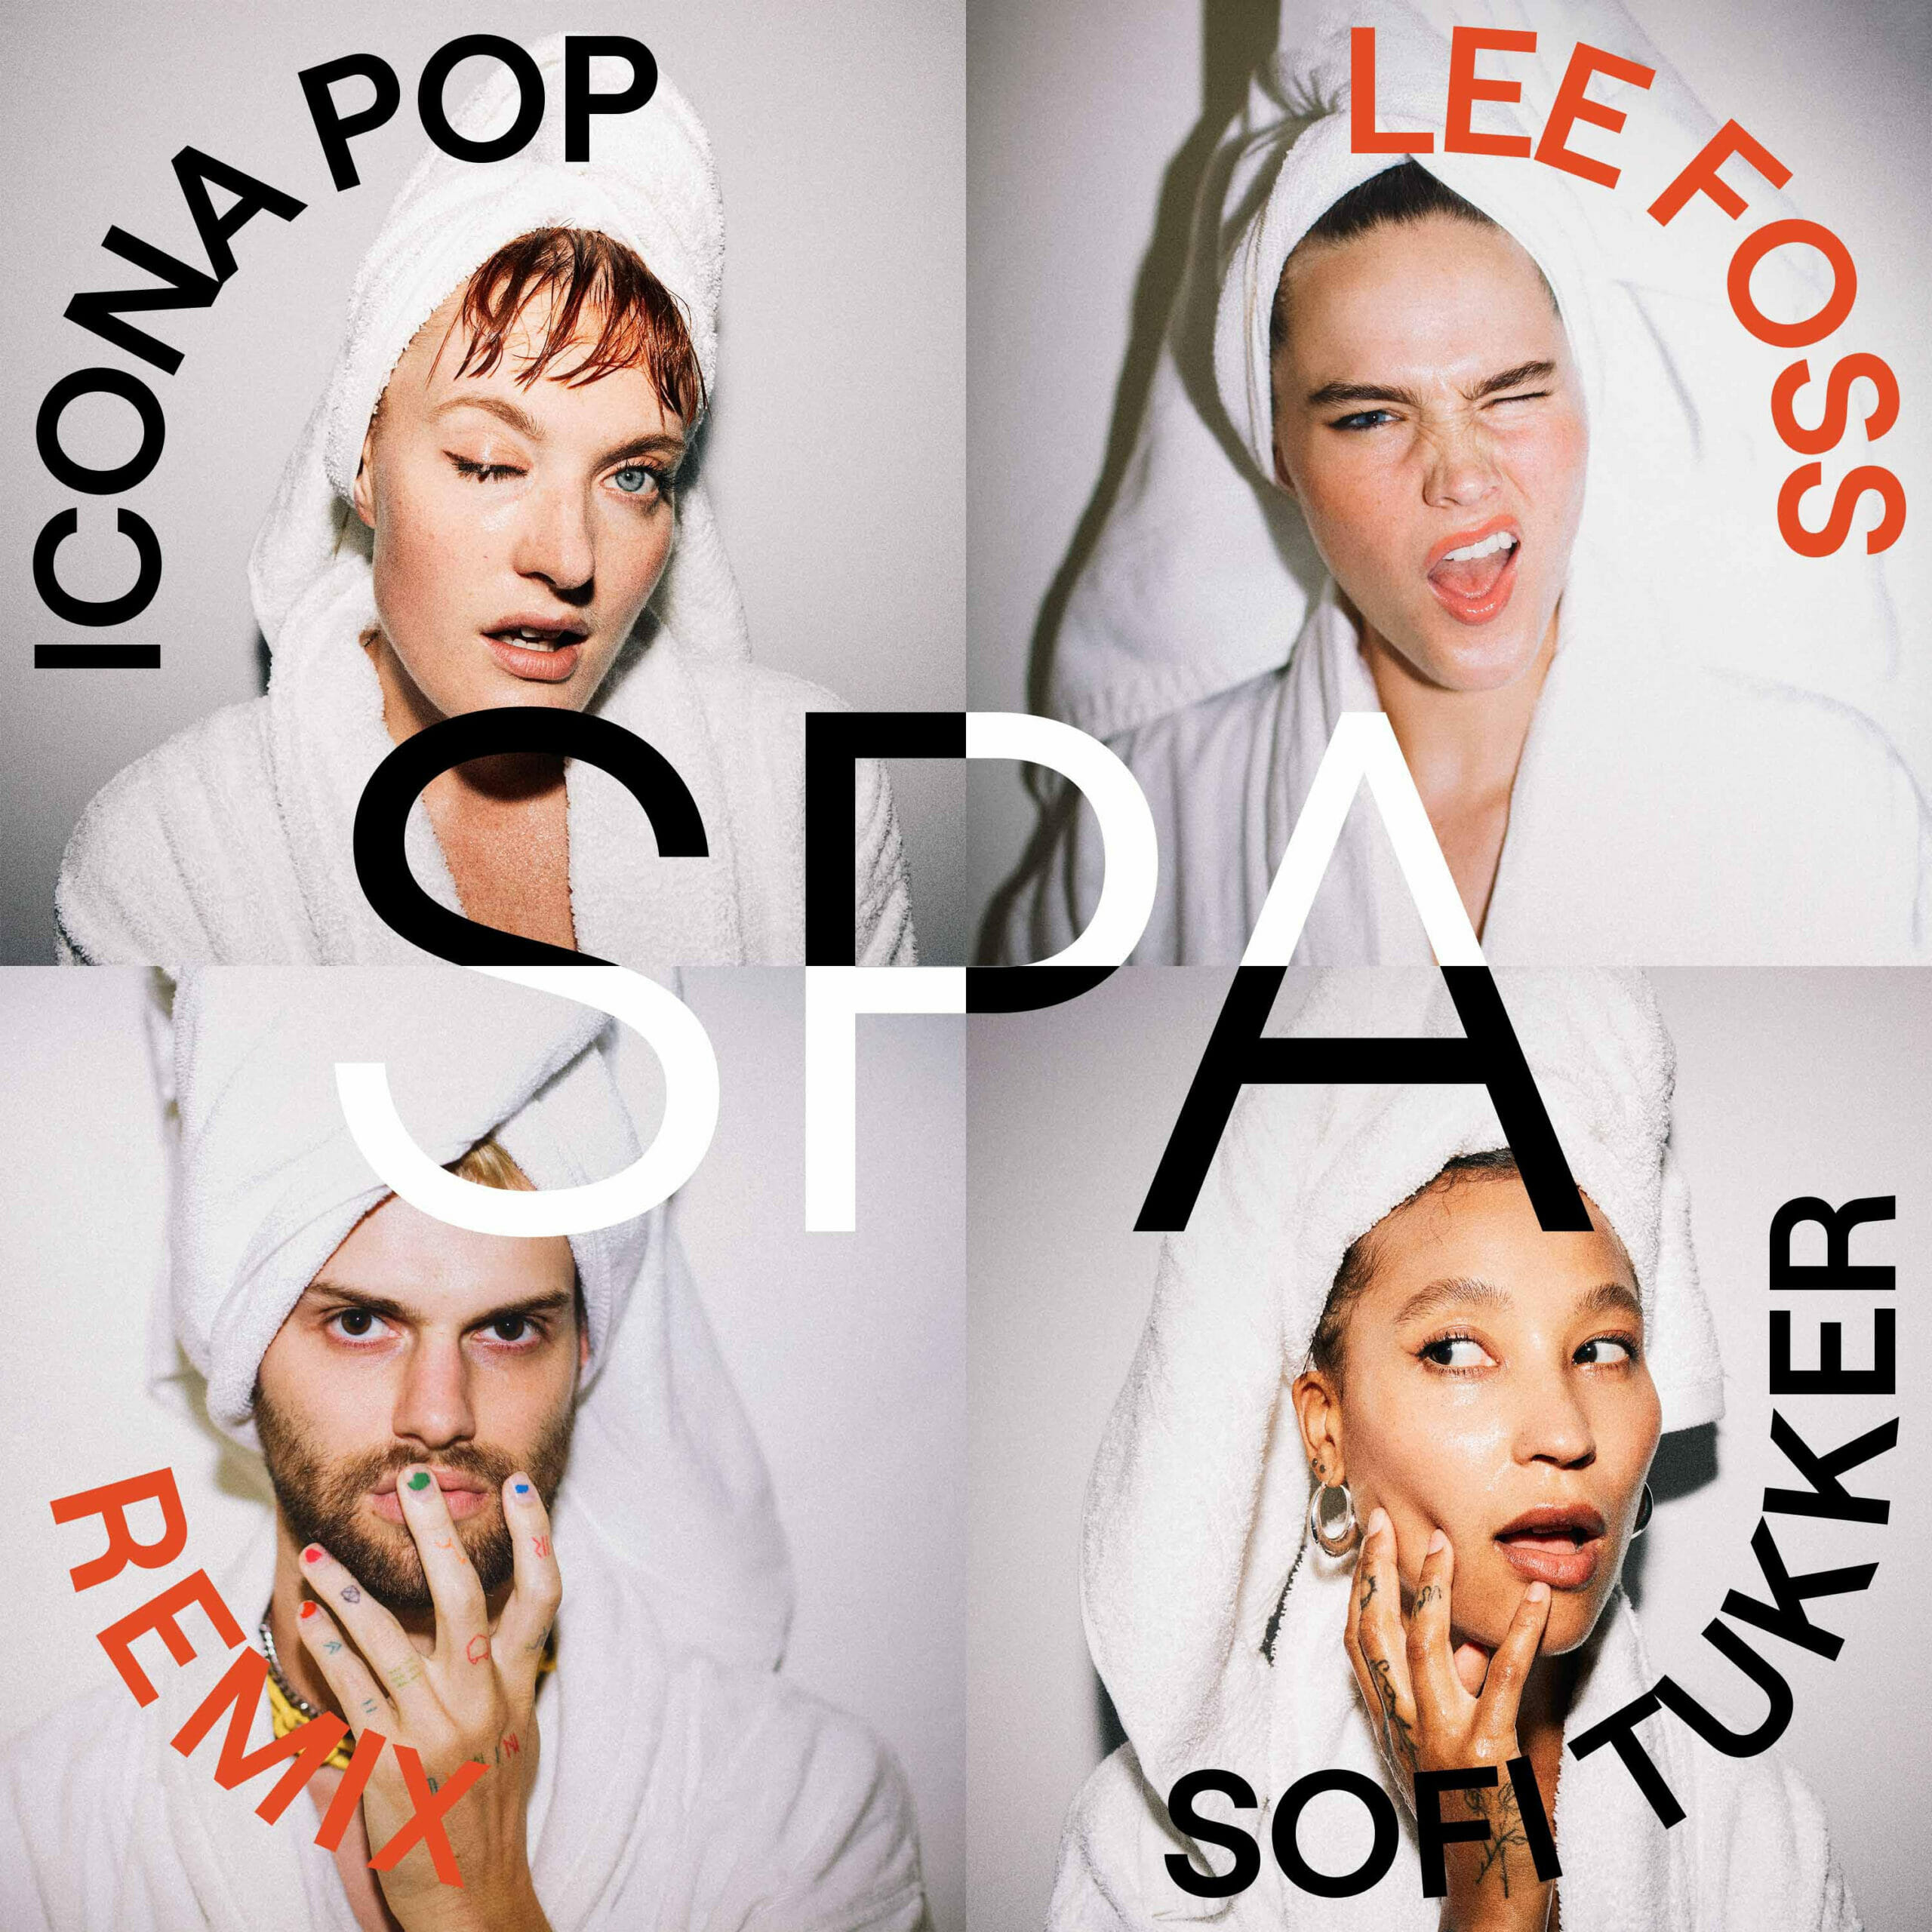 Icona Pop and SOFI TUKKER Release 'Spa (Lee Foss Remix)'